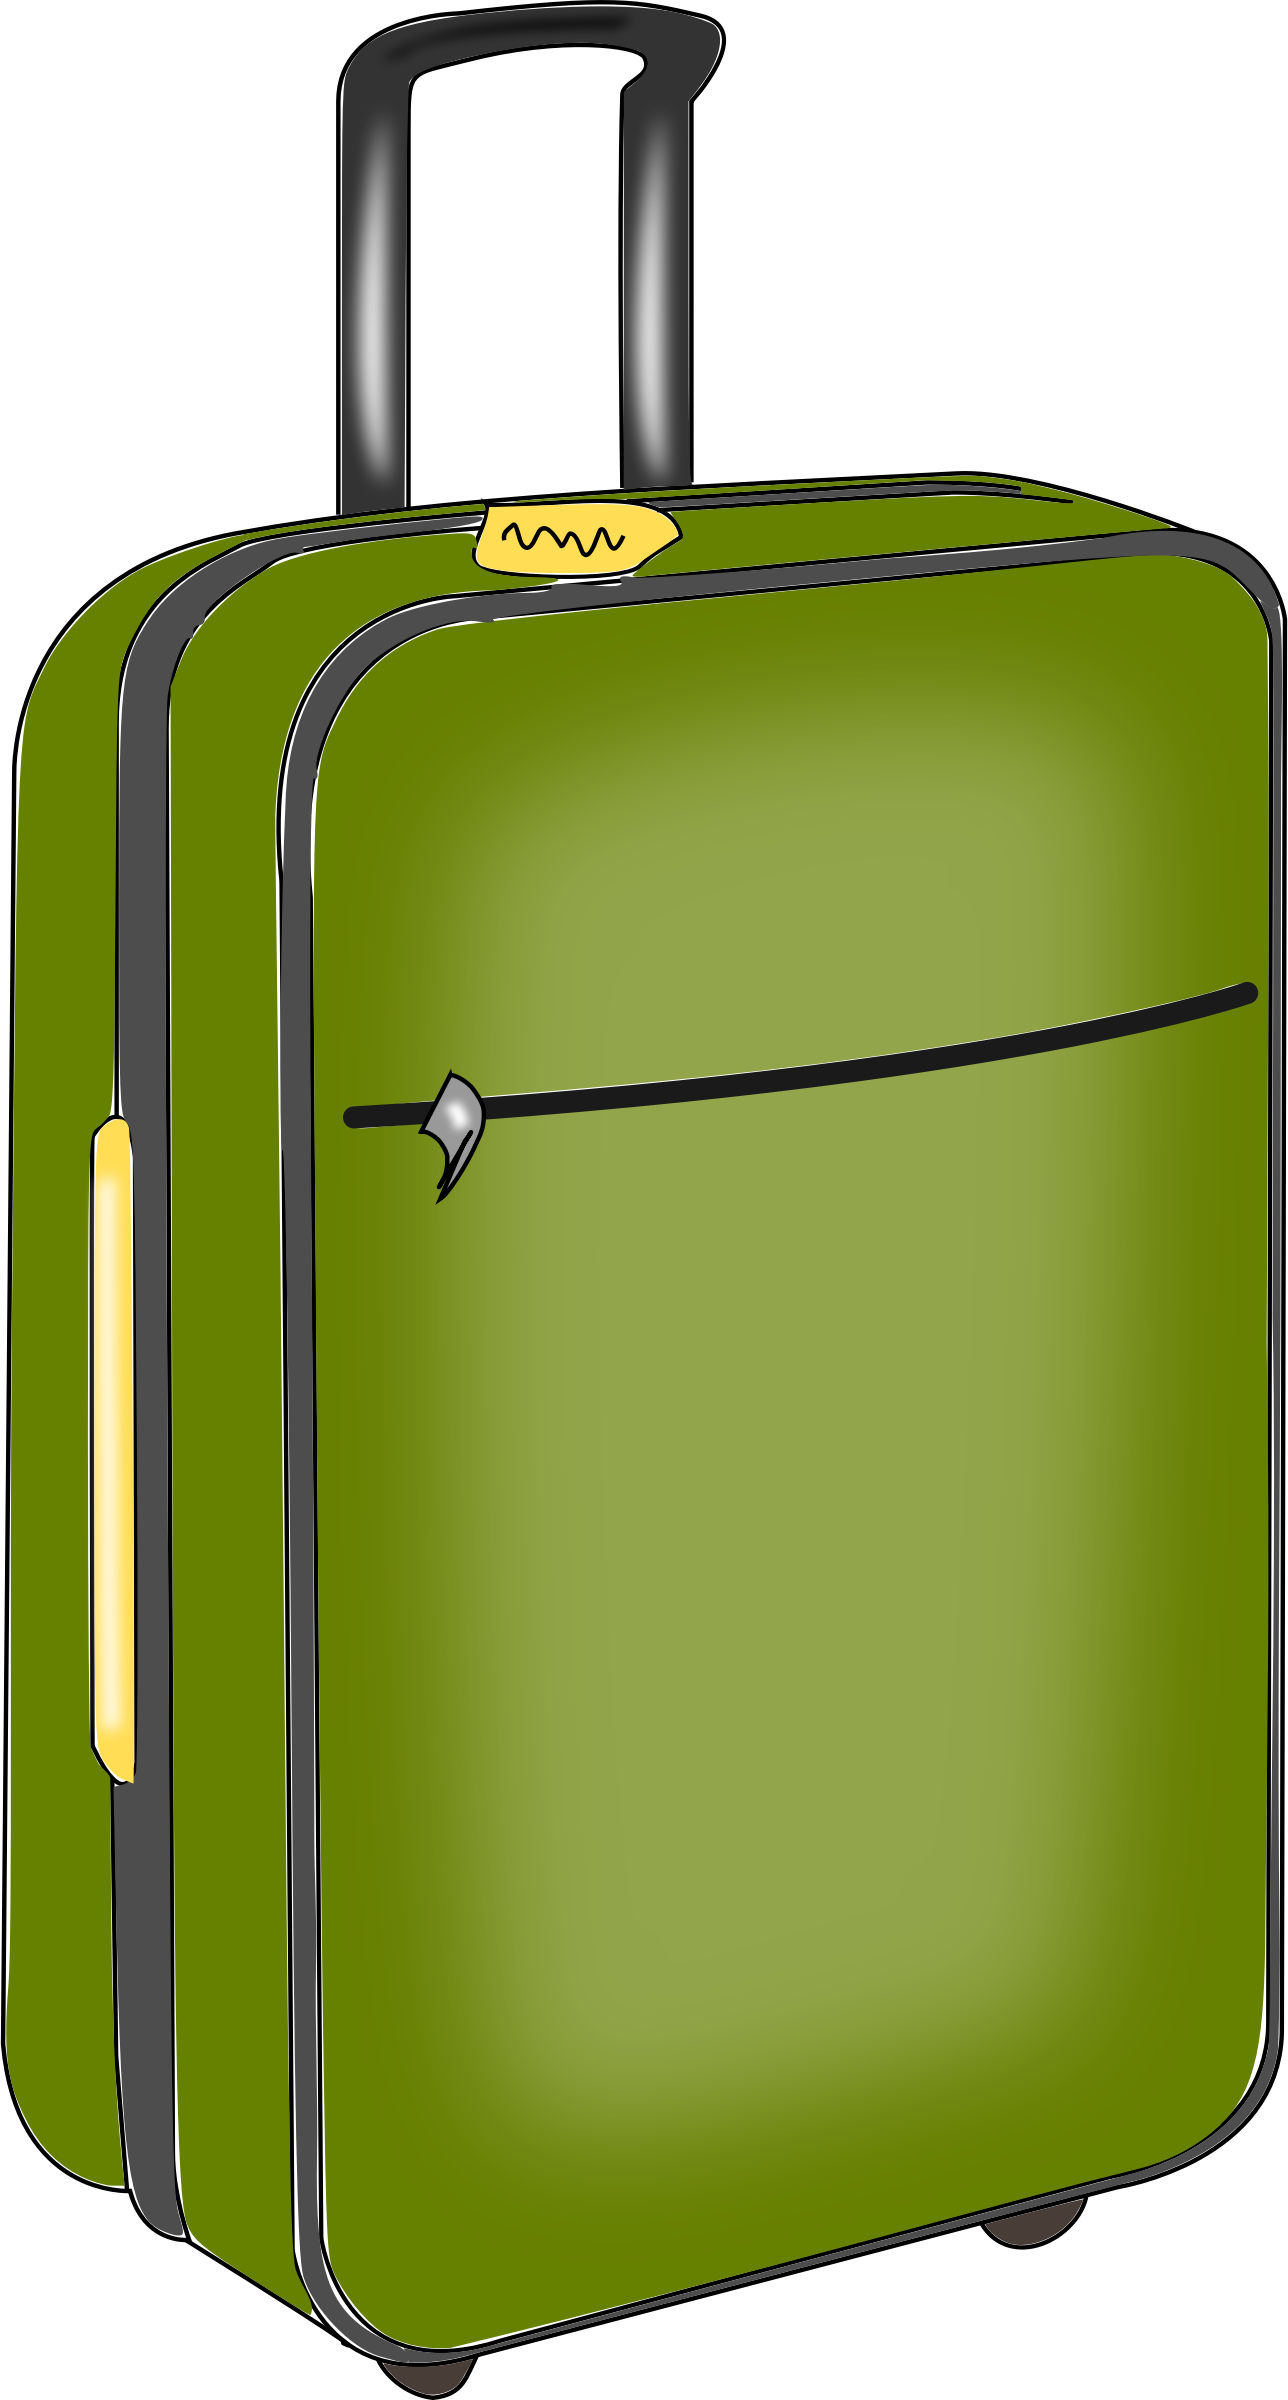 banner freeuse Big image png. Luggage clipart.